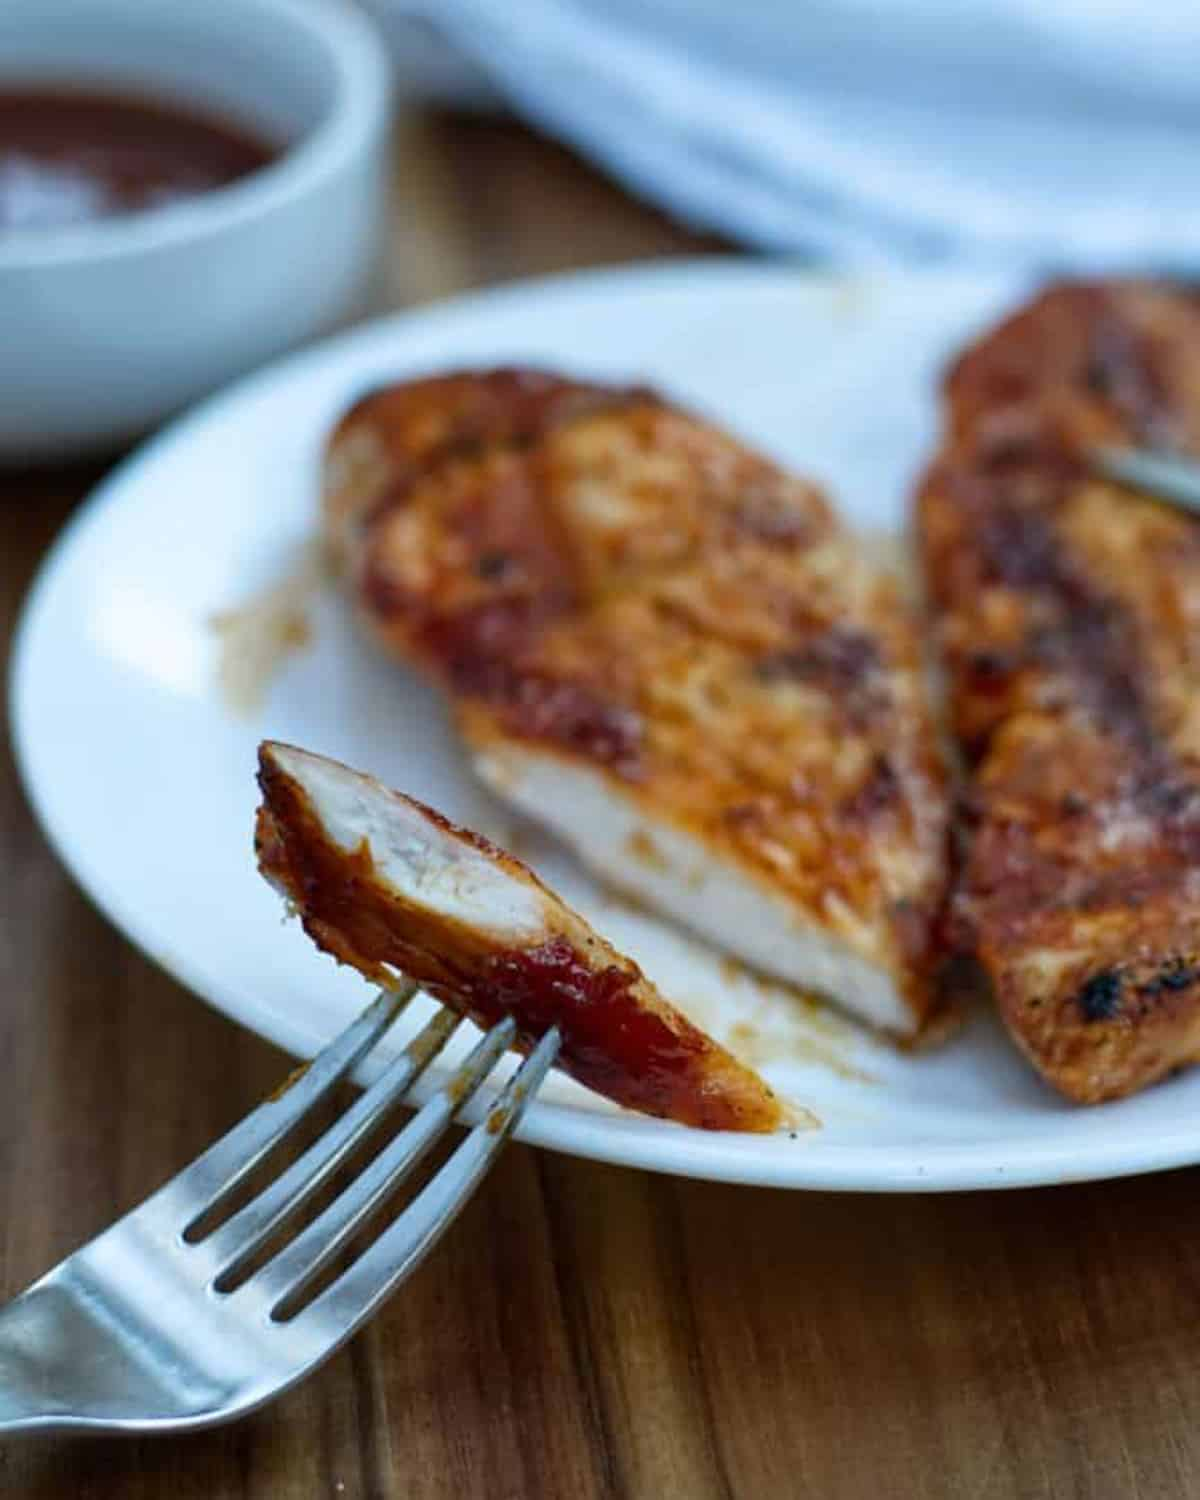 grilled chicken with kickass bbq sauce on it